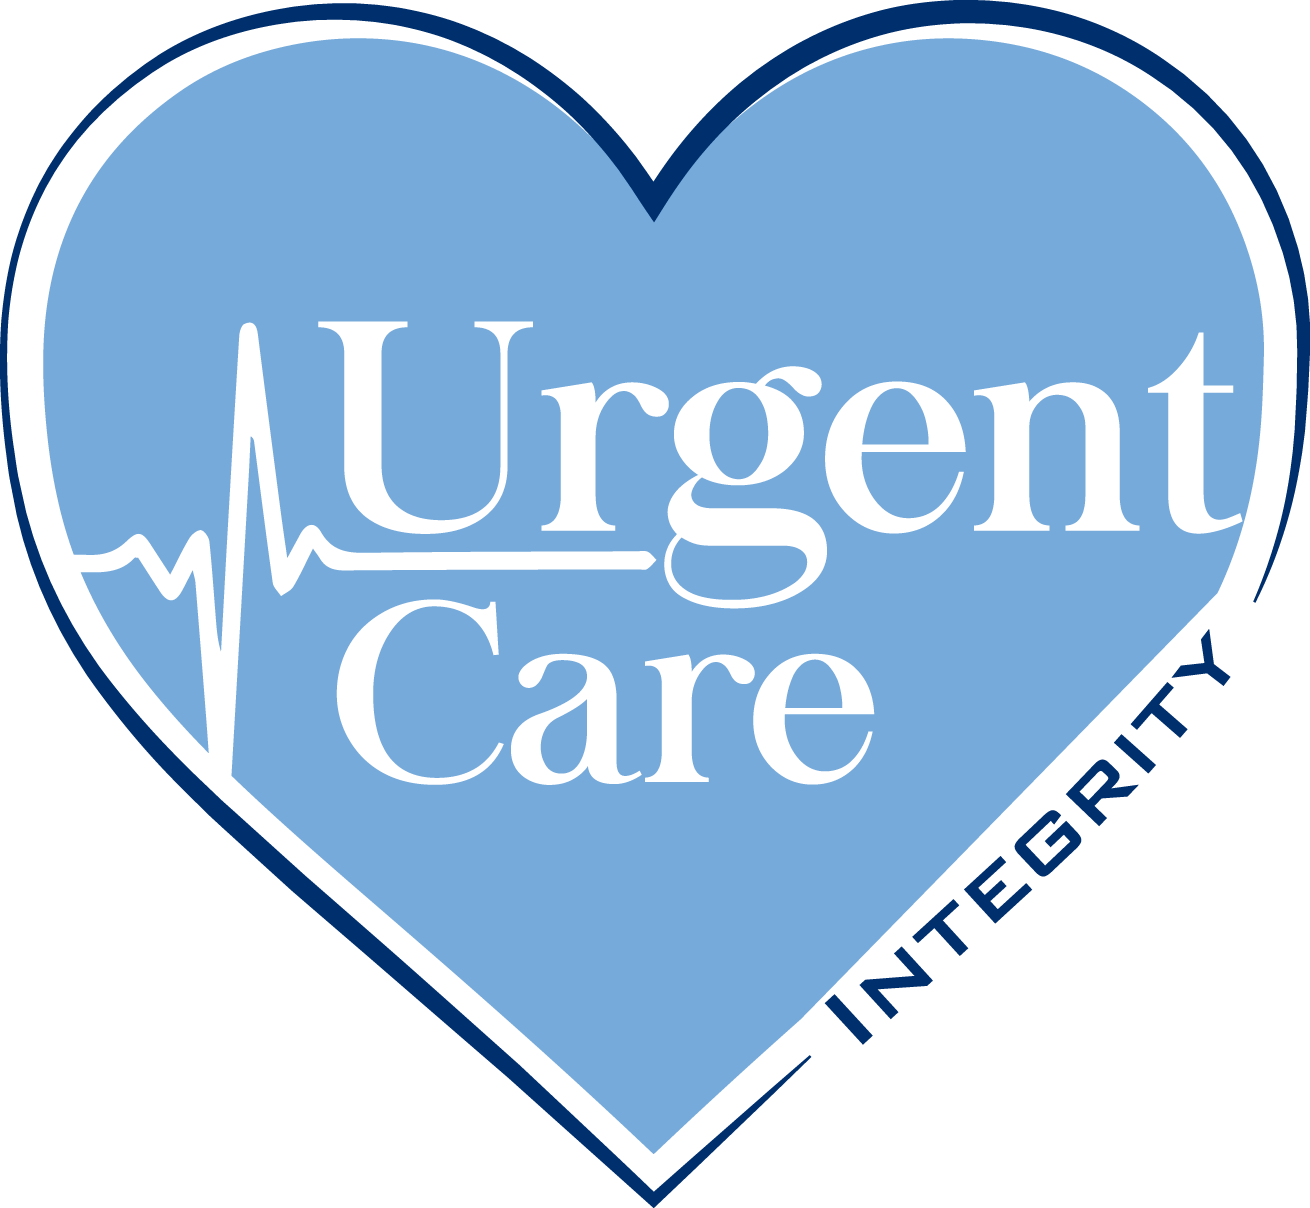 Integrity Urgent Care - Copperas Cove Logo